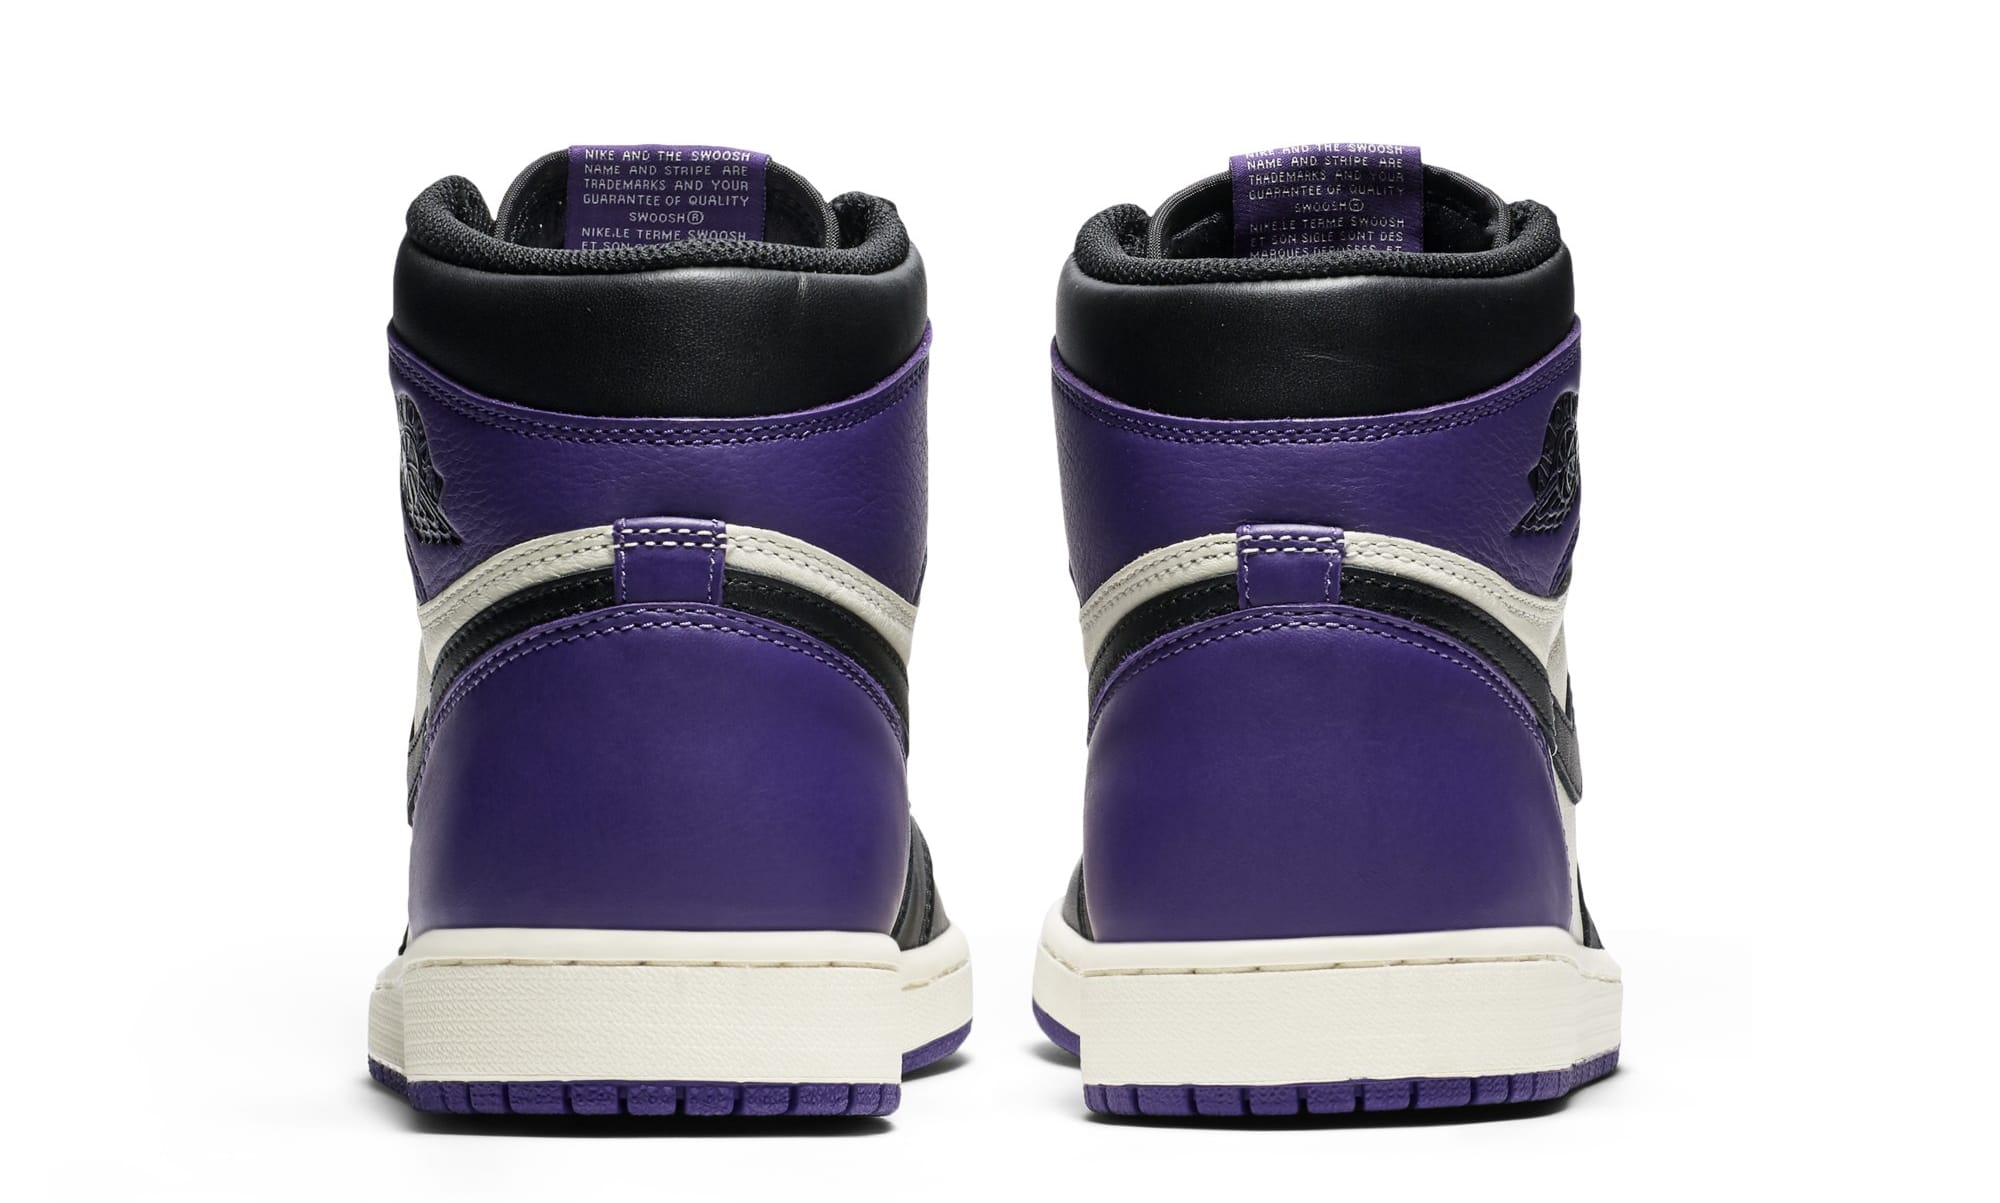 Air Jordan 1 High OG 'Court Purple' 555088-501 (Heel)